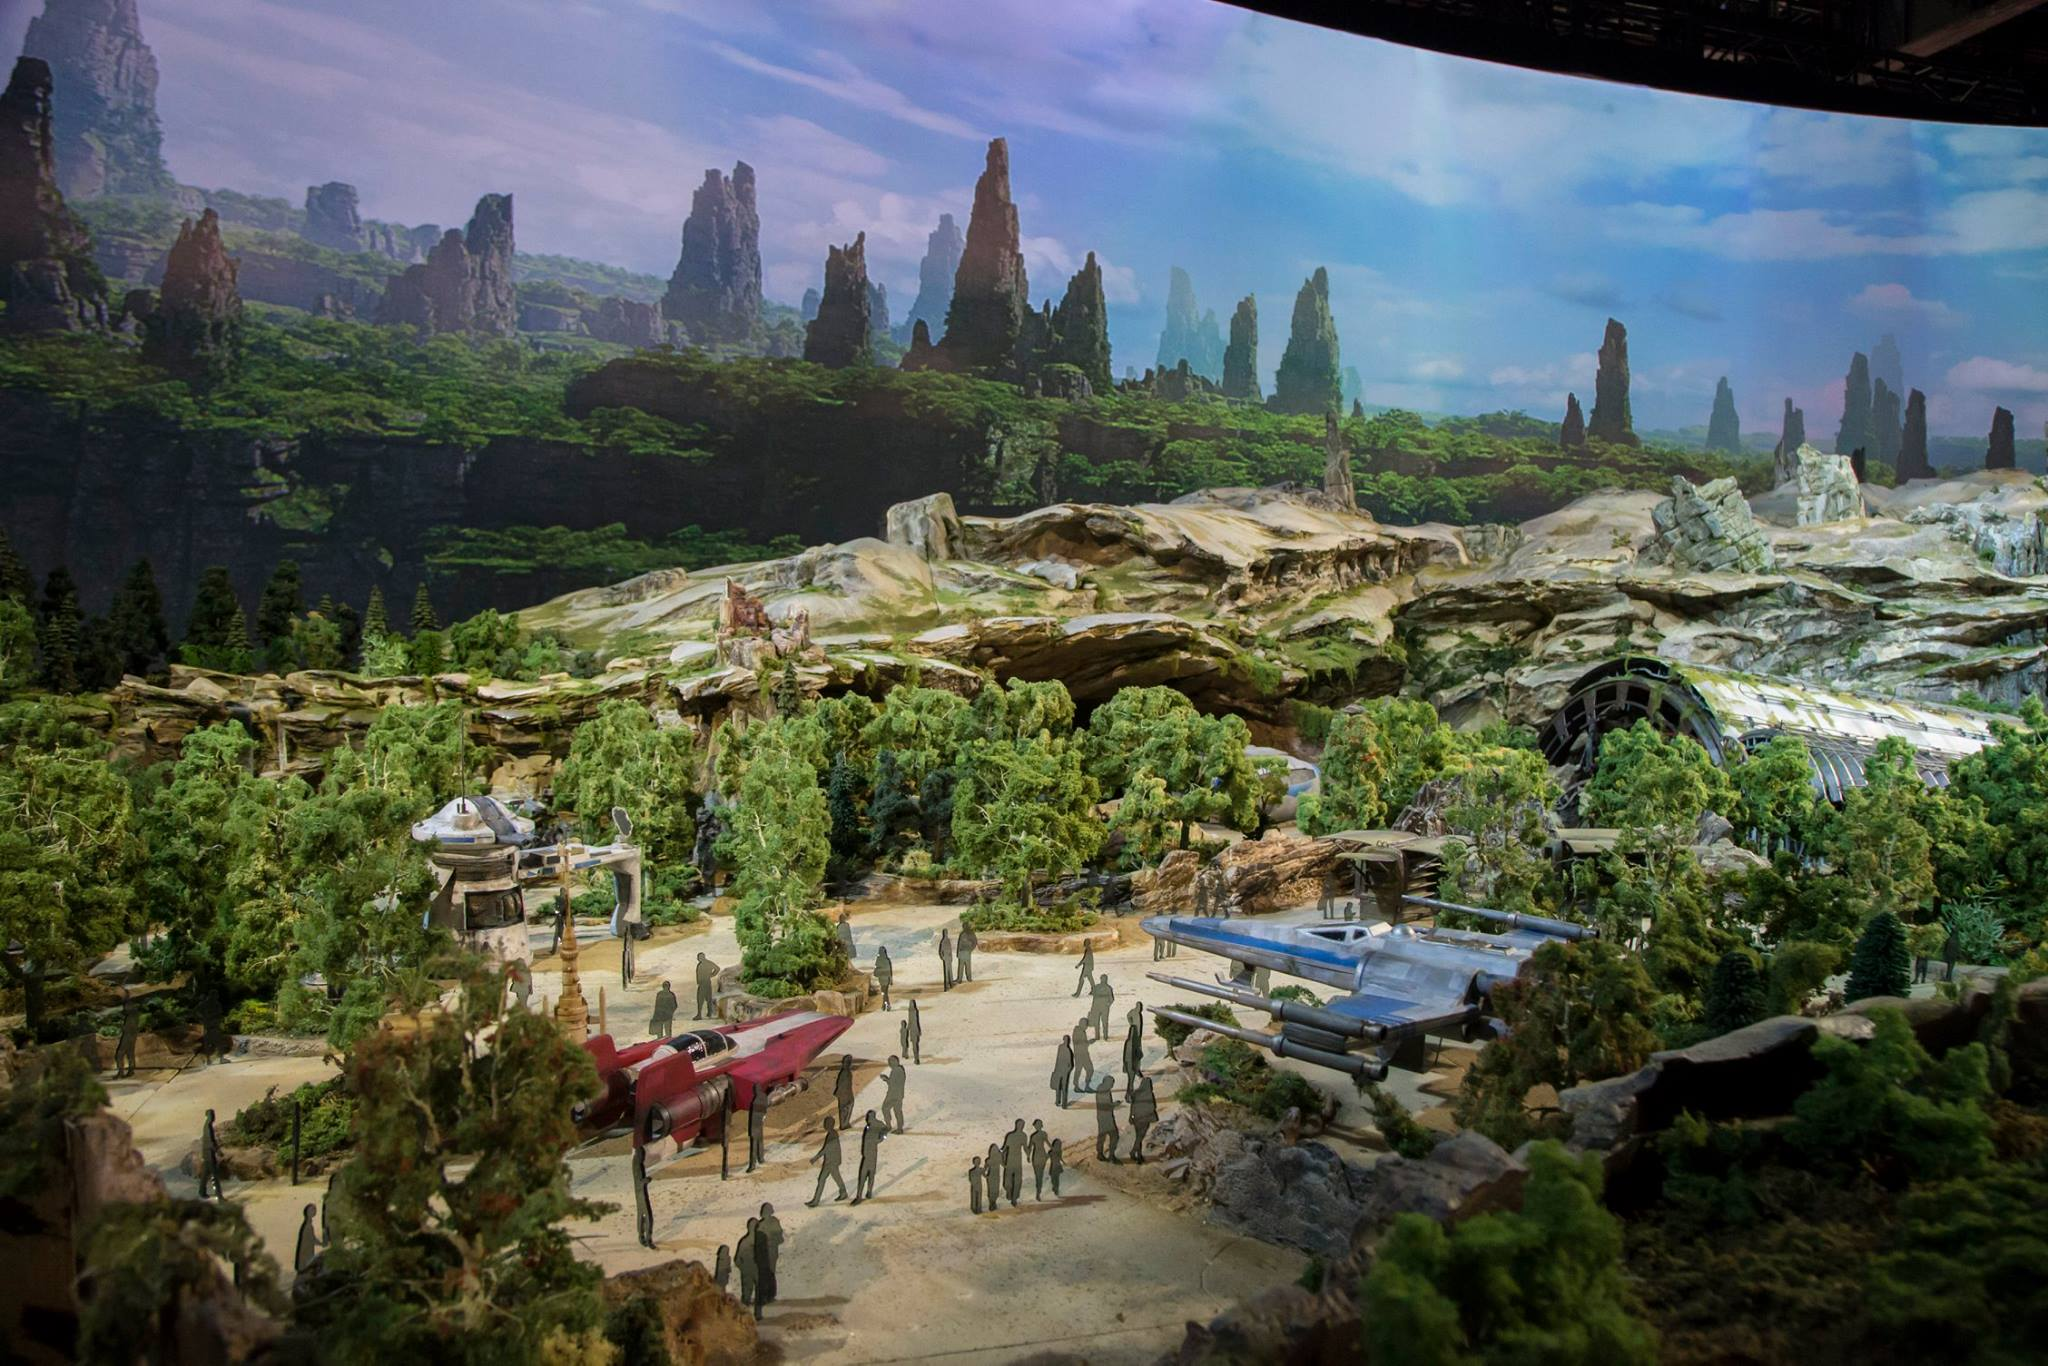 disney-reveals-incredibly-cool-full-star-wars-land-model-at-d23-expo7.jpeg